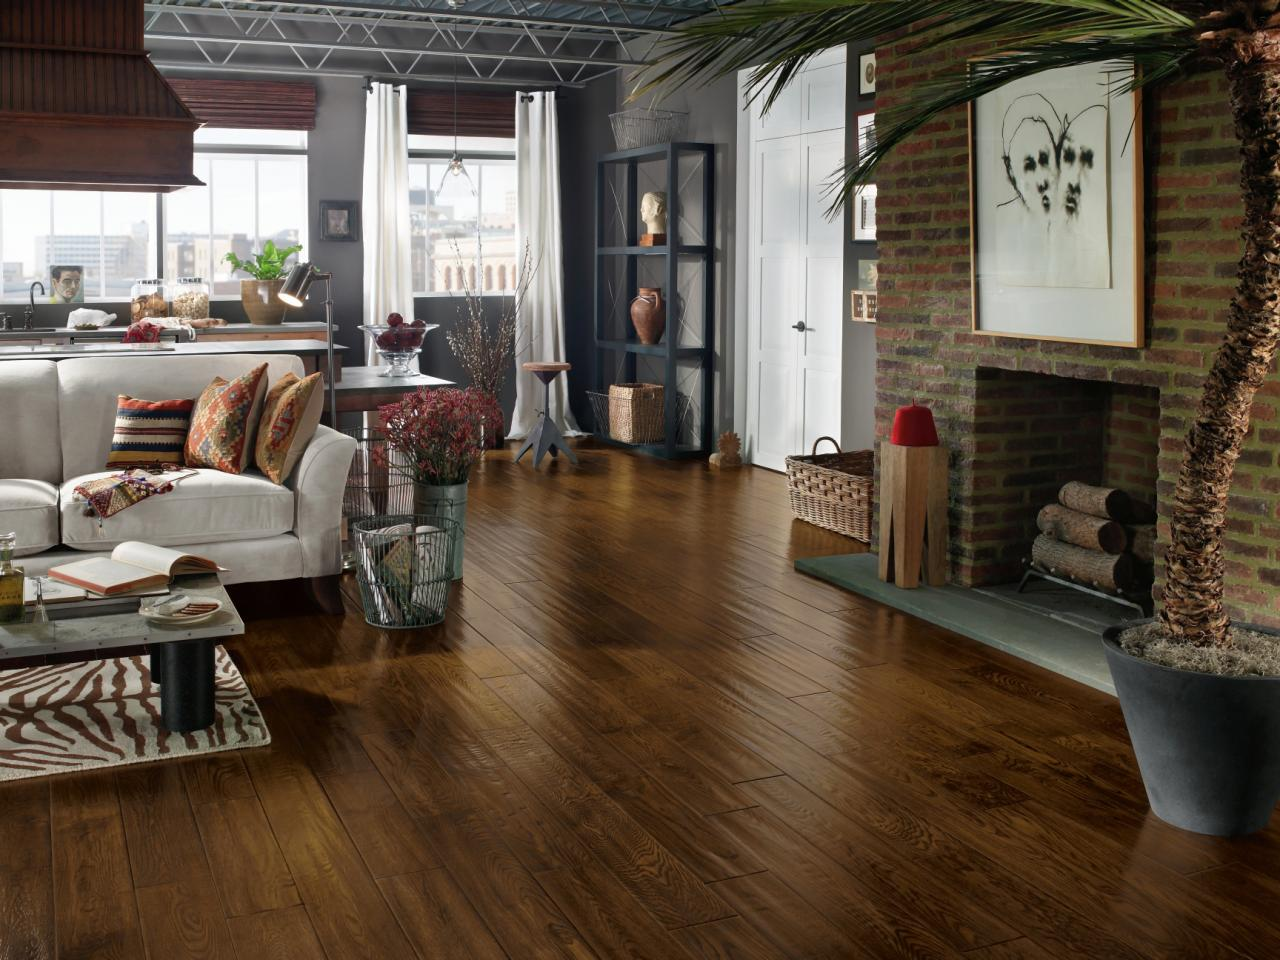 Wood Flooring In The Basement